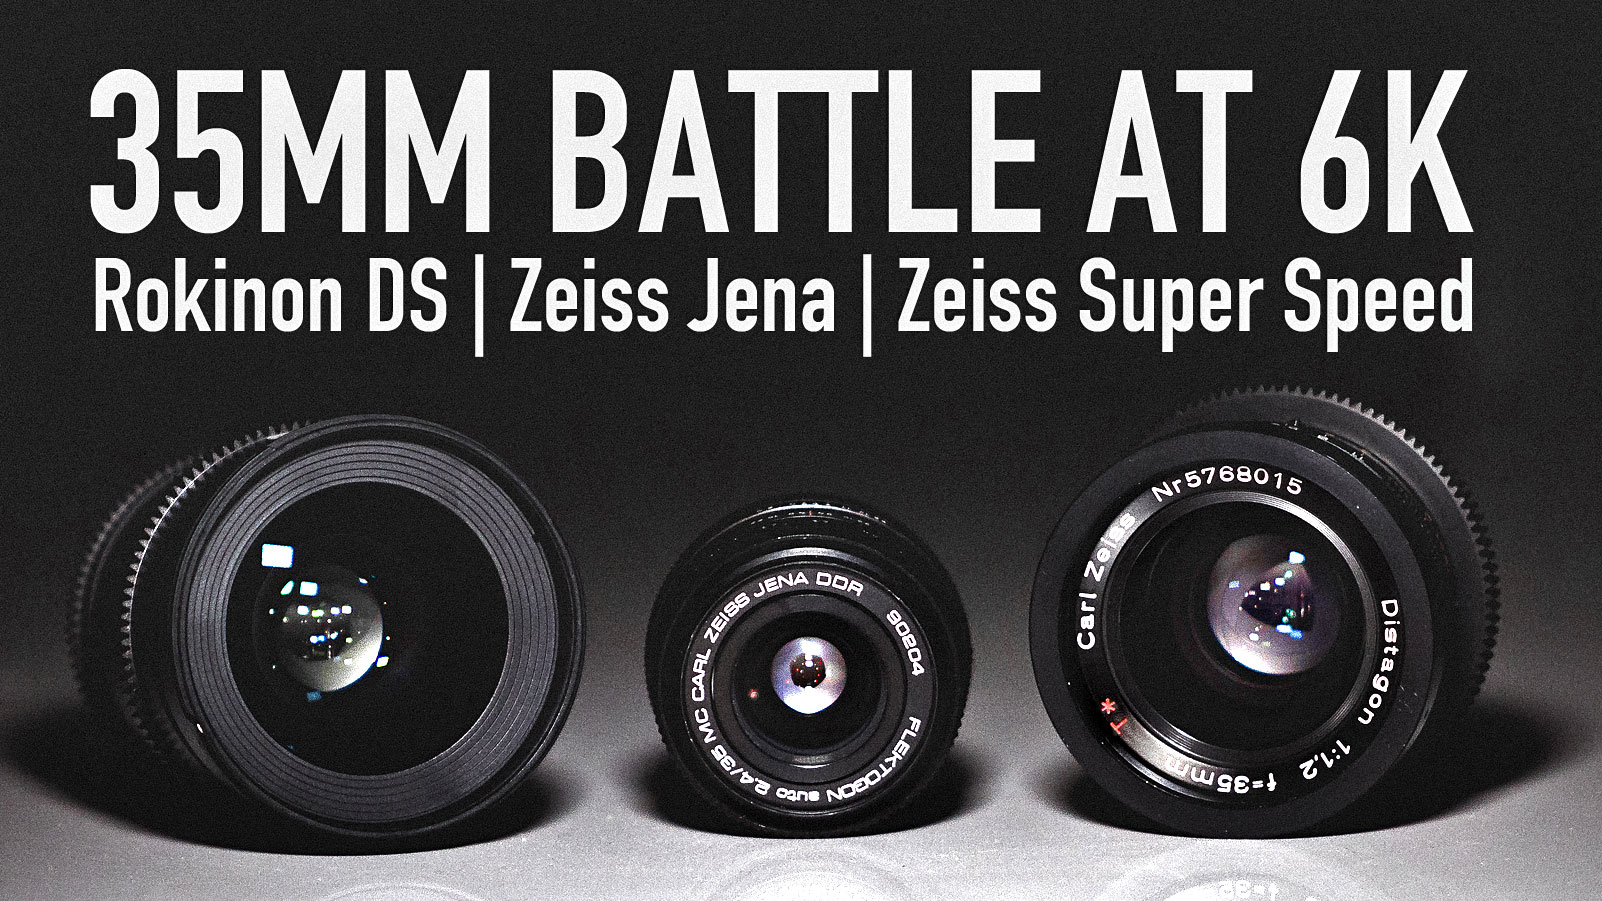 35mm Battle at 6K |Zeiss Jena vs Rokinon DS vs Zeiss Super Speed